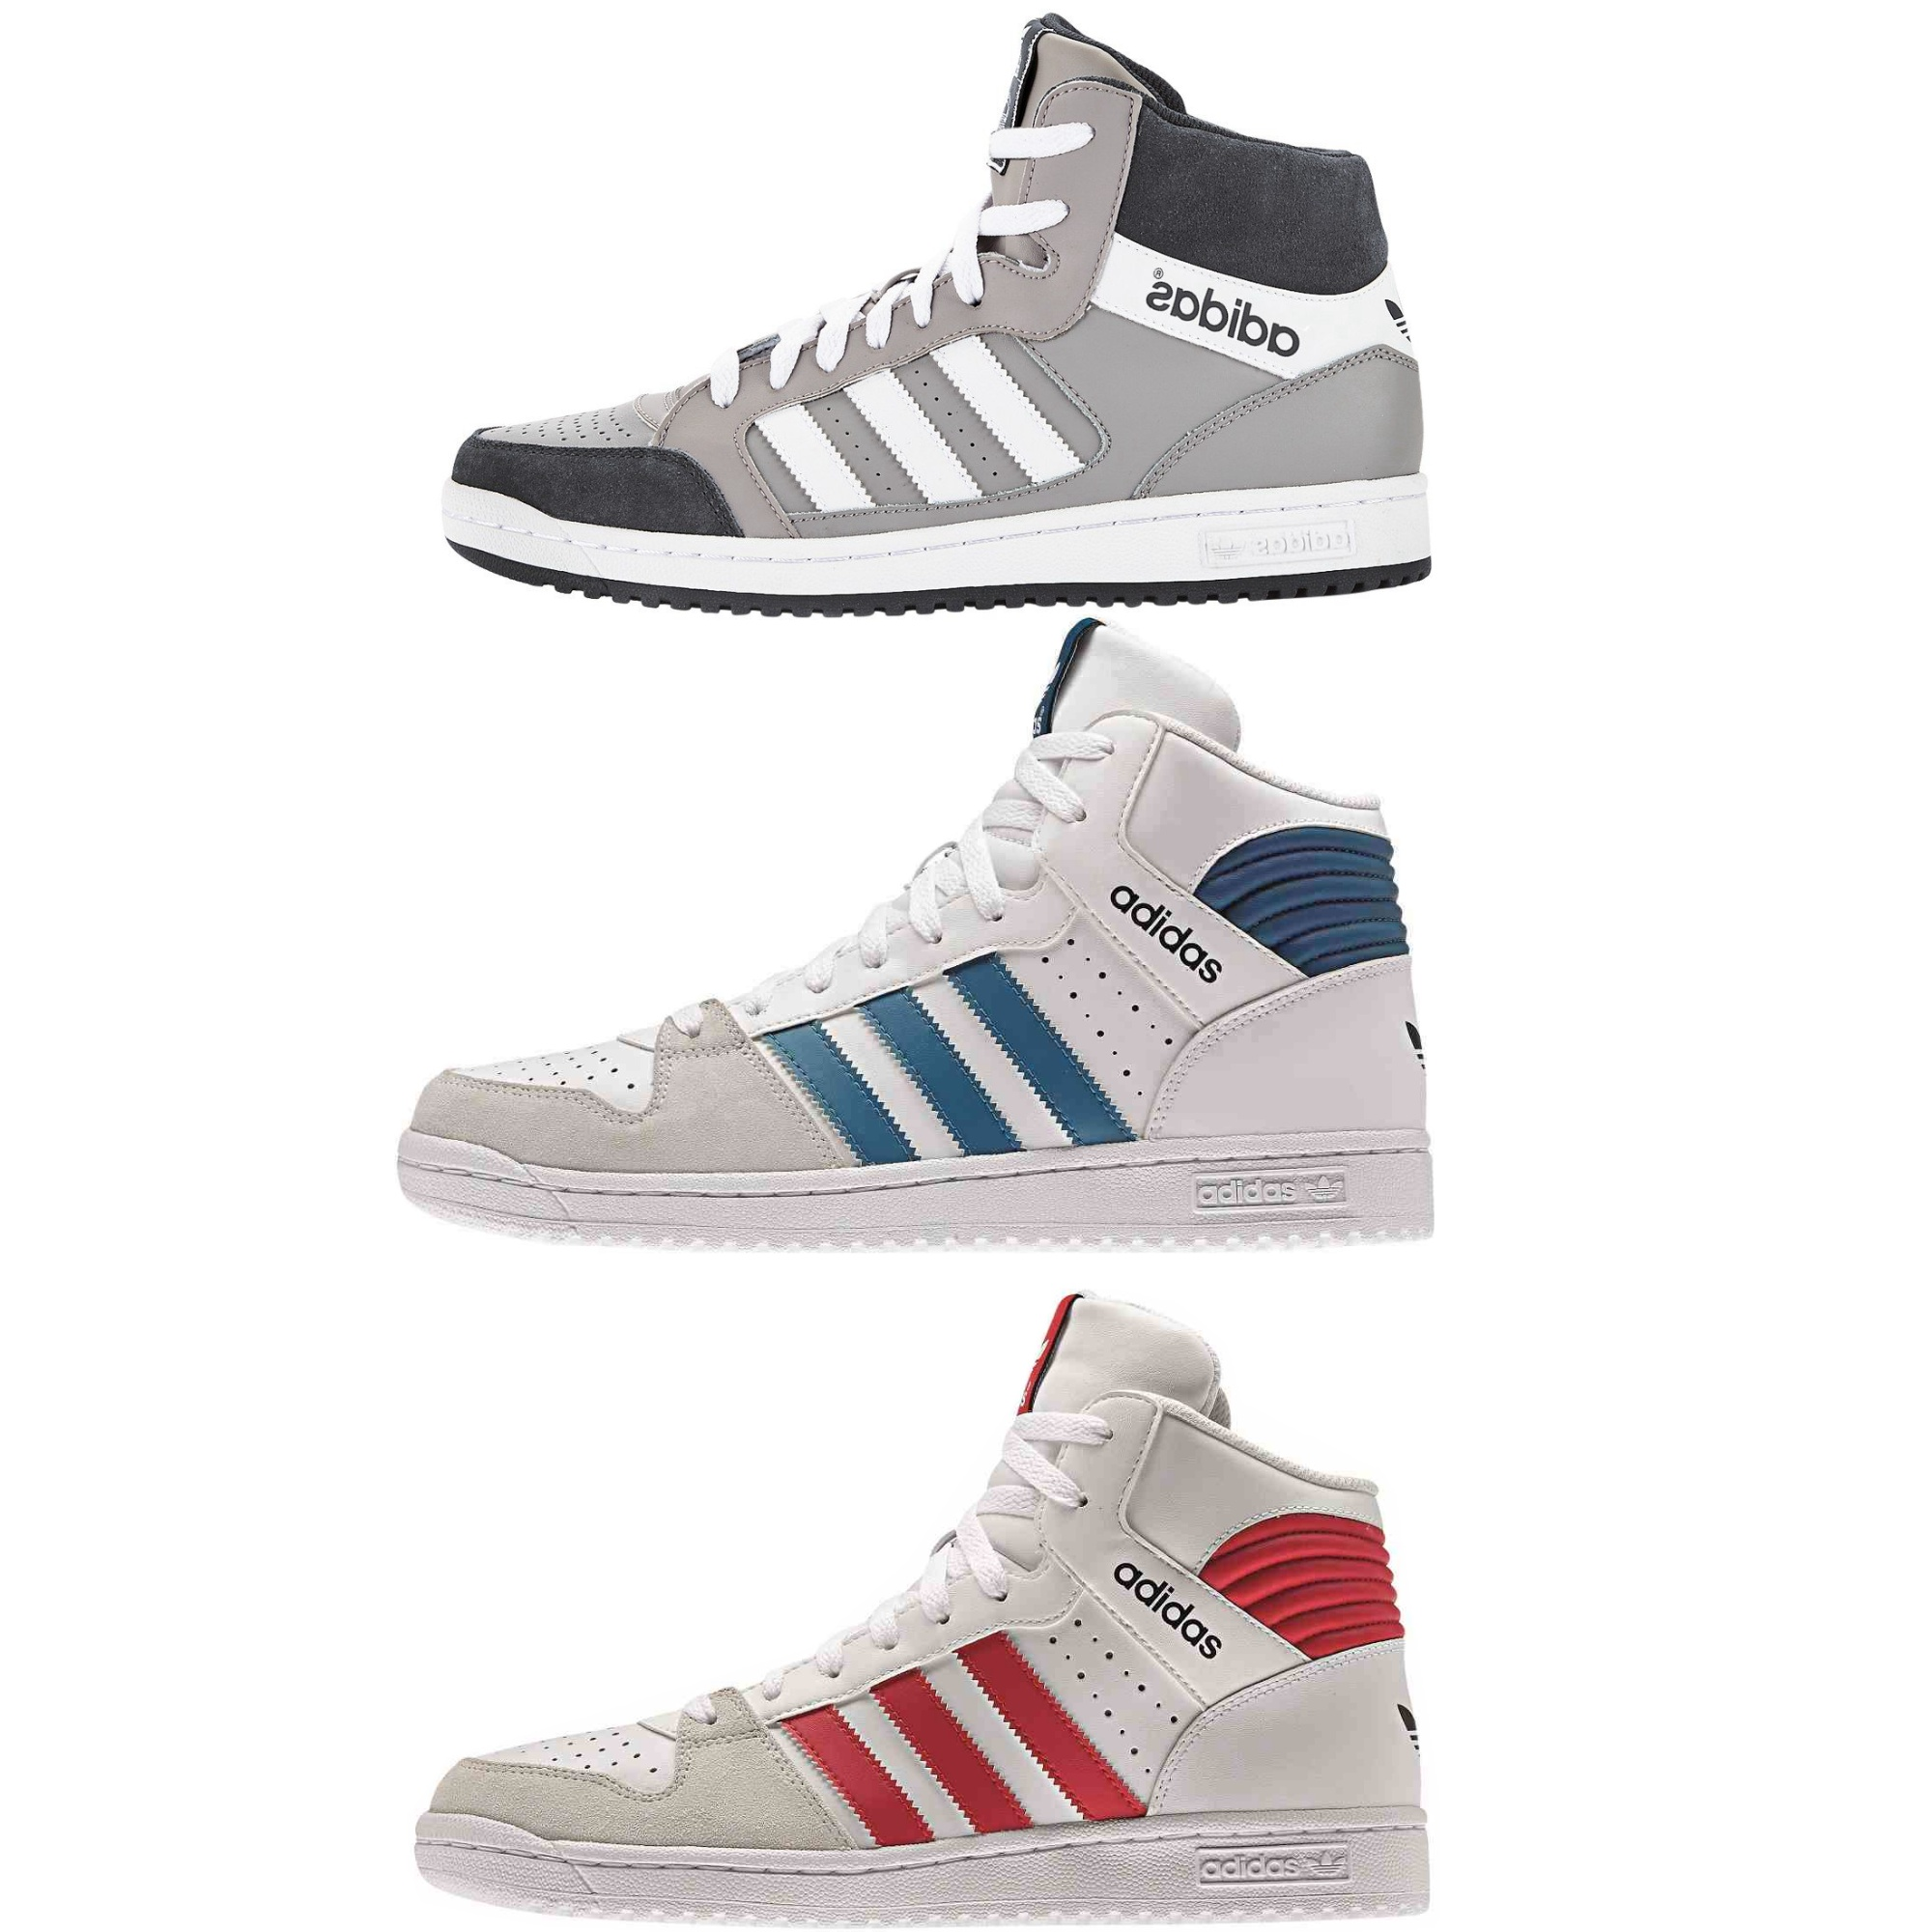 adidas originals pro play shoes sneakers high top sneaker mens real leather ebay. Black Bedroom Furniture Sets. Home Design Ideas